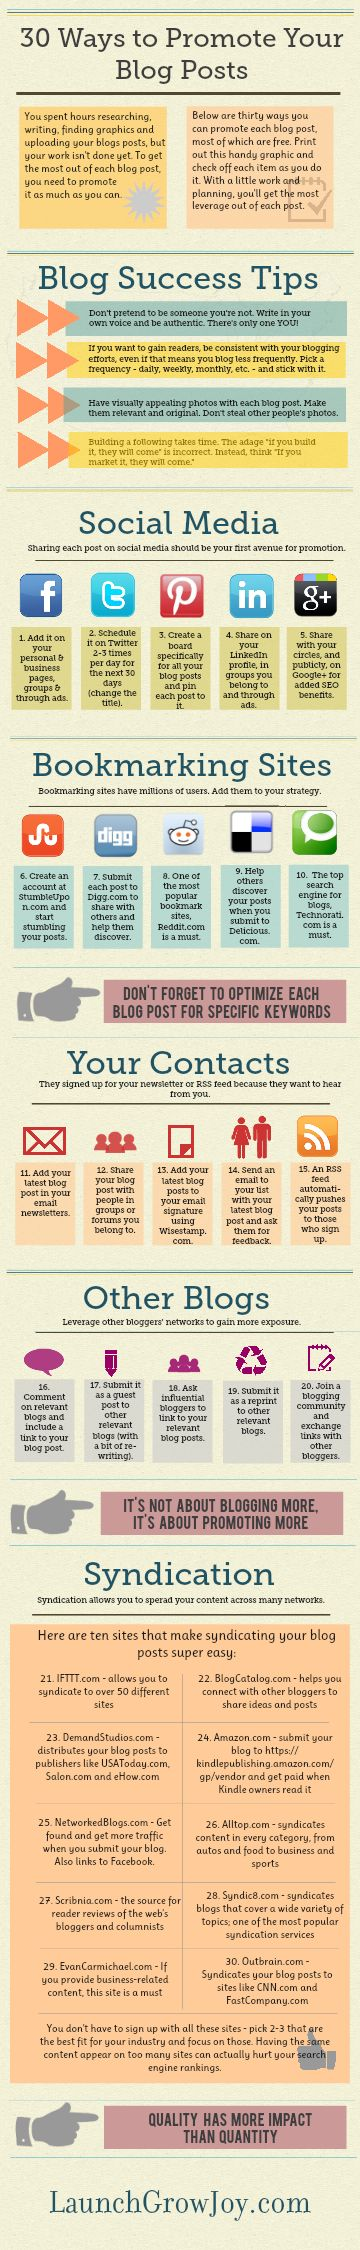 30 Ways to Promote Blog Posts - Writers Write